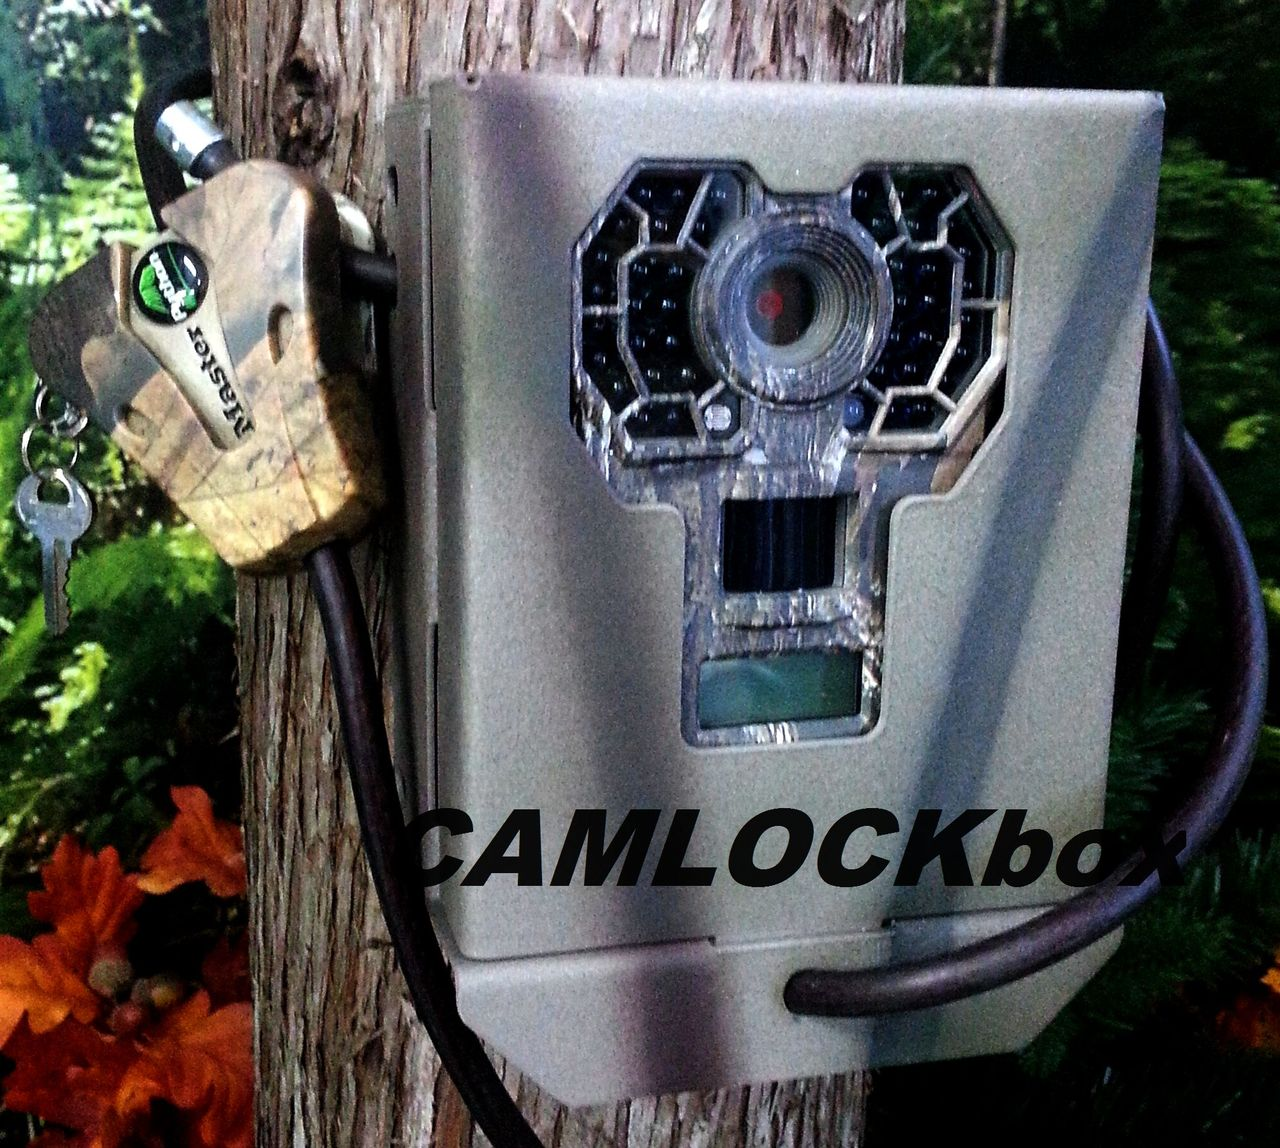 https://store.camlockbox.com/product_images/j/509/Stealth_Cam_G30_G42NG_Security_Box_2__93044.jpg